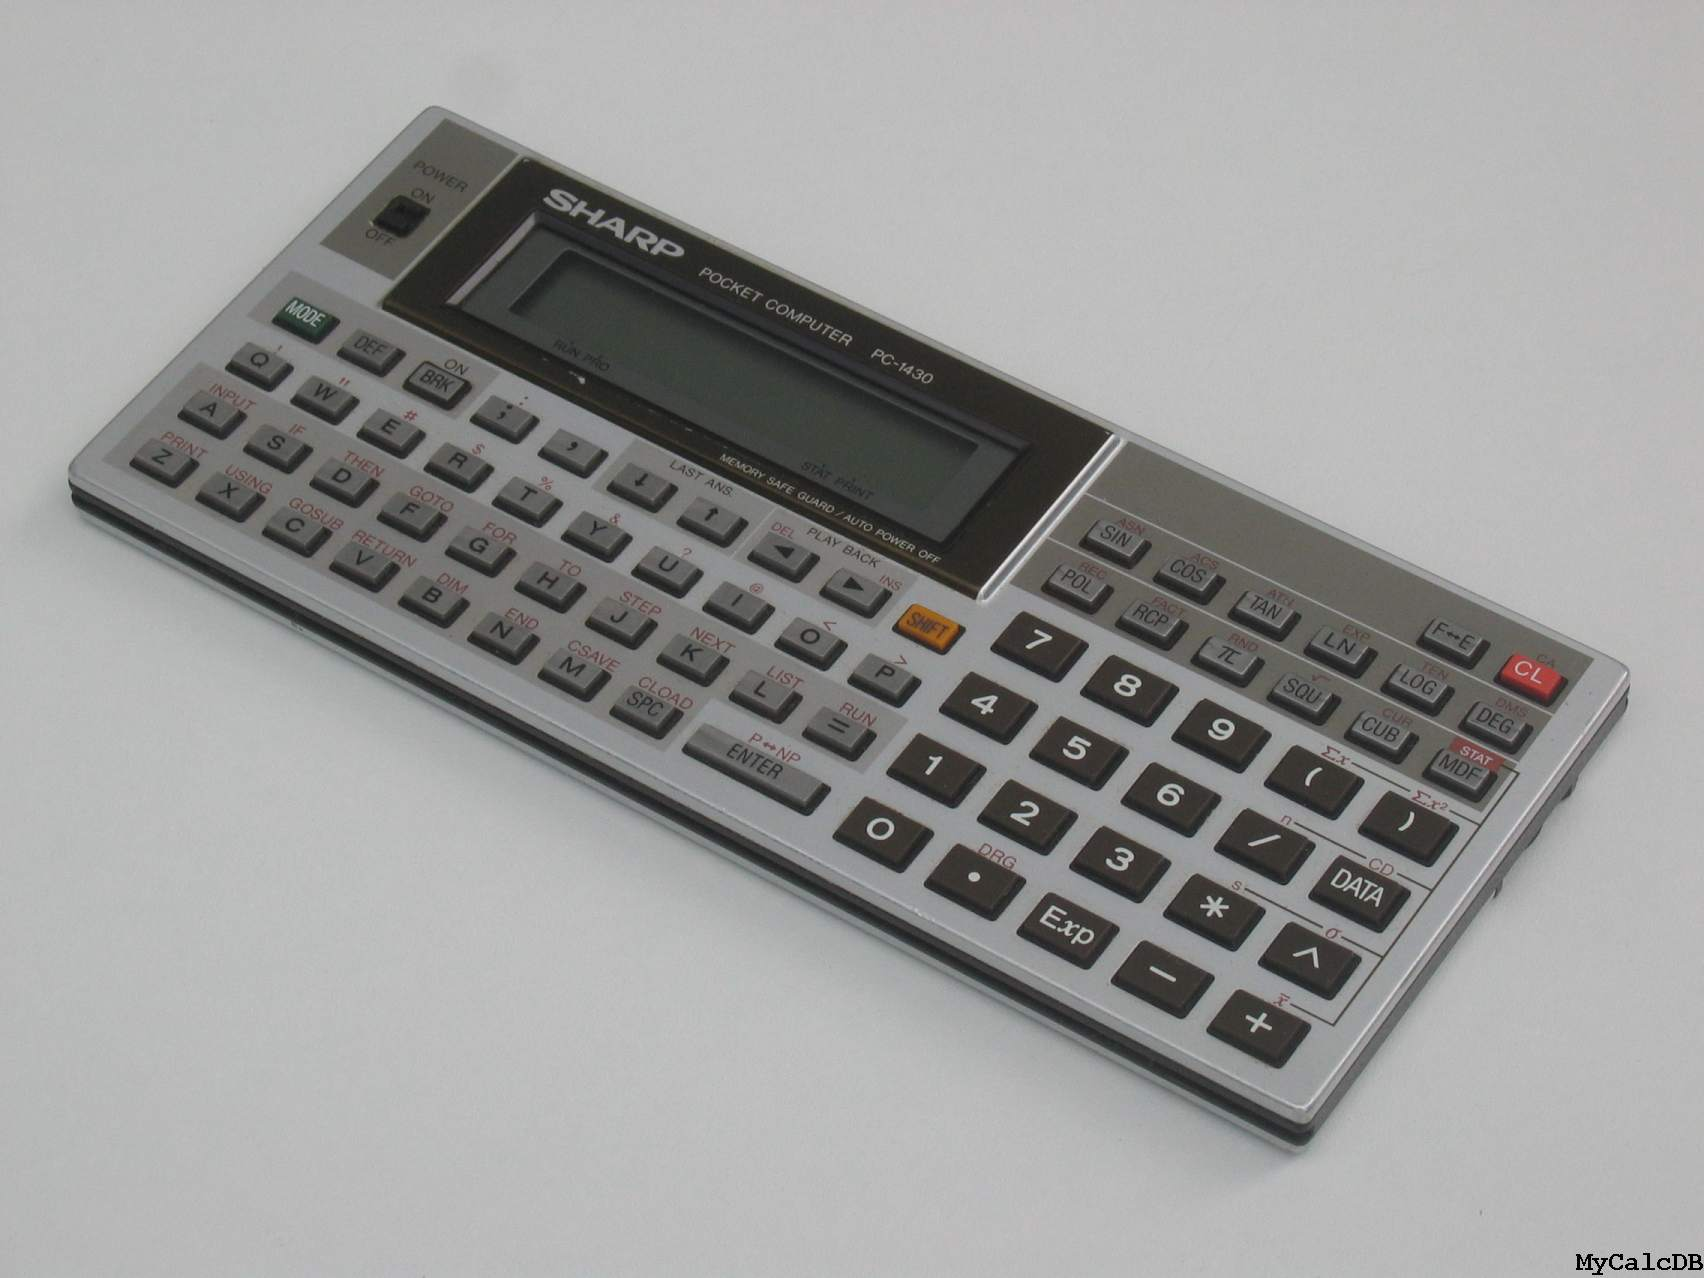 Sharp PC-1430